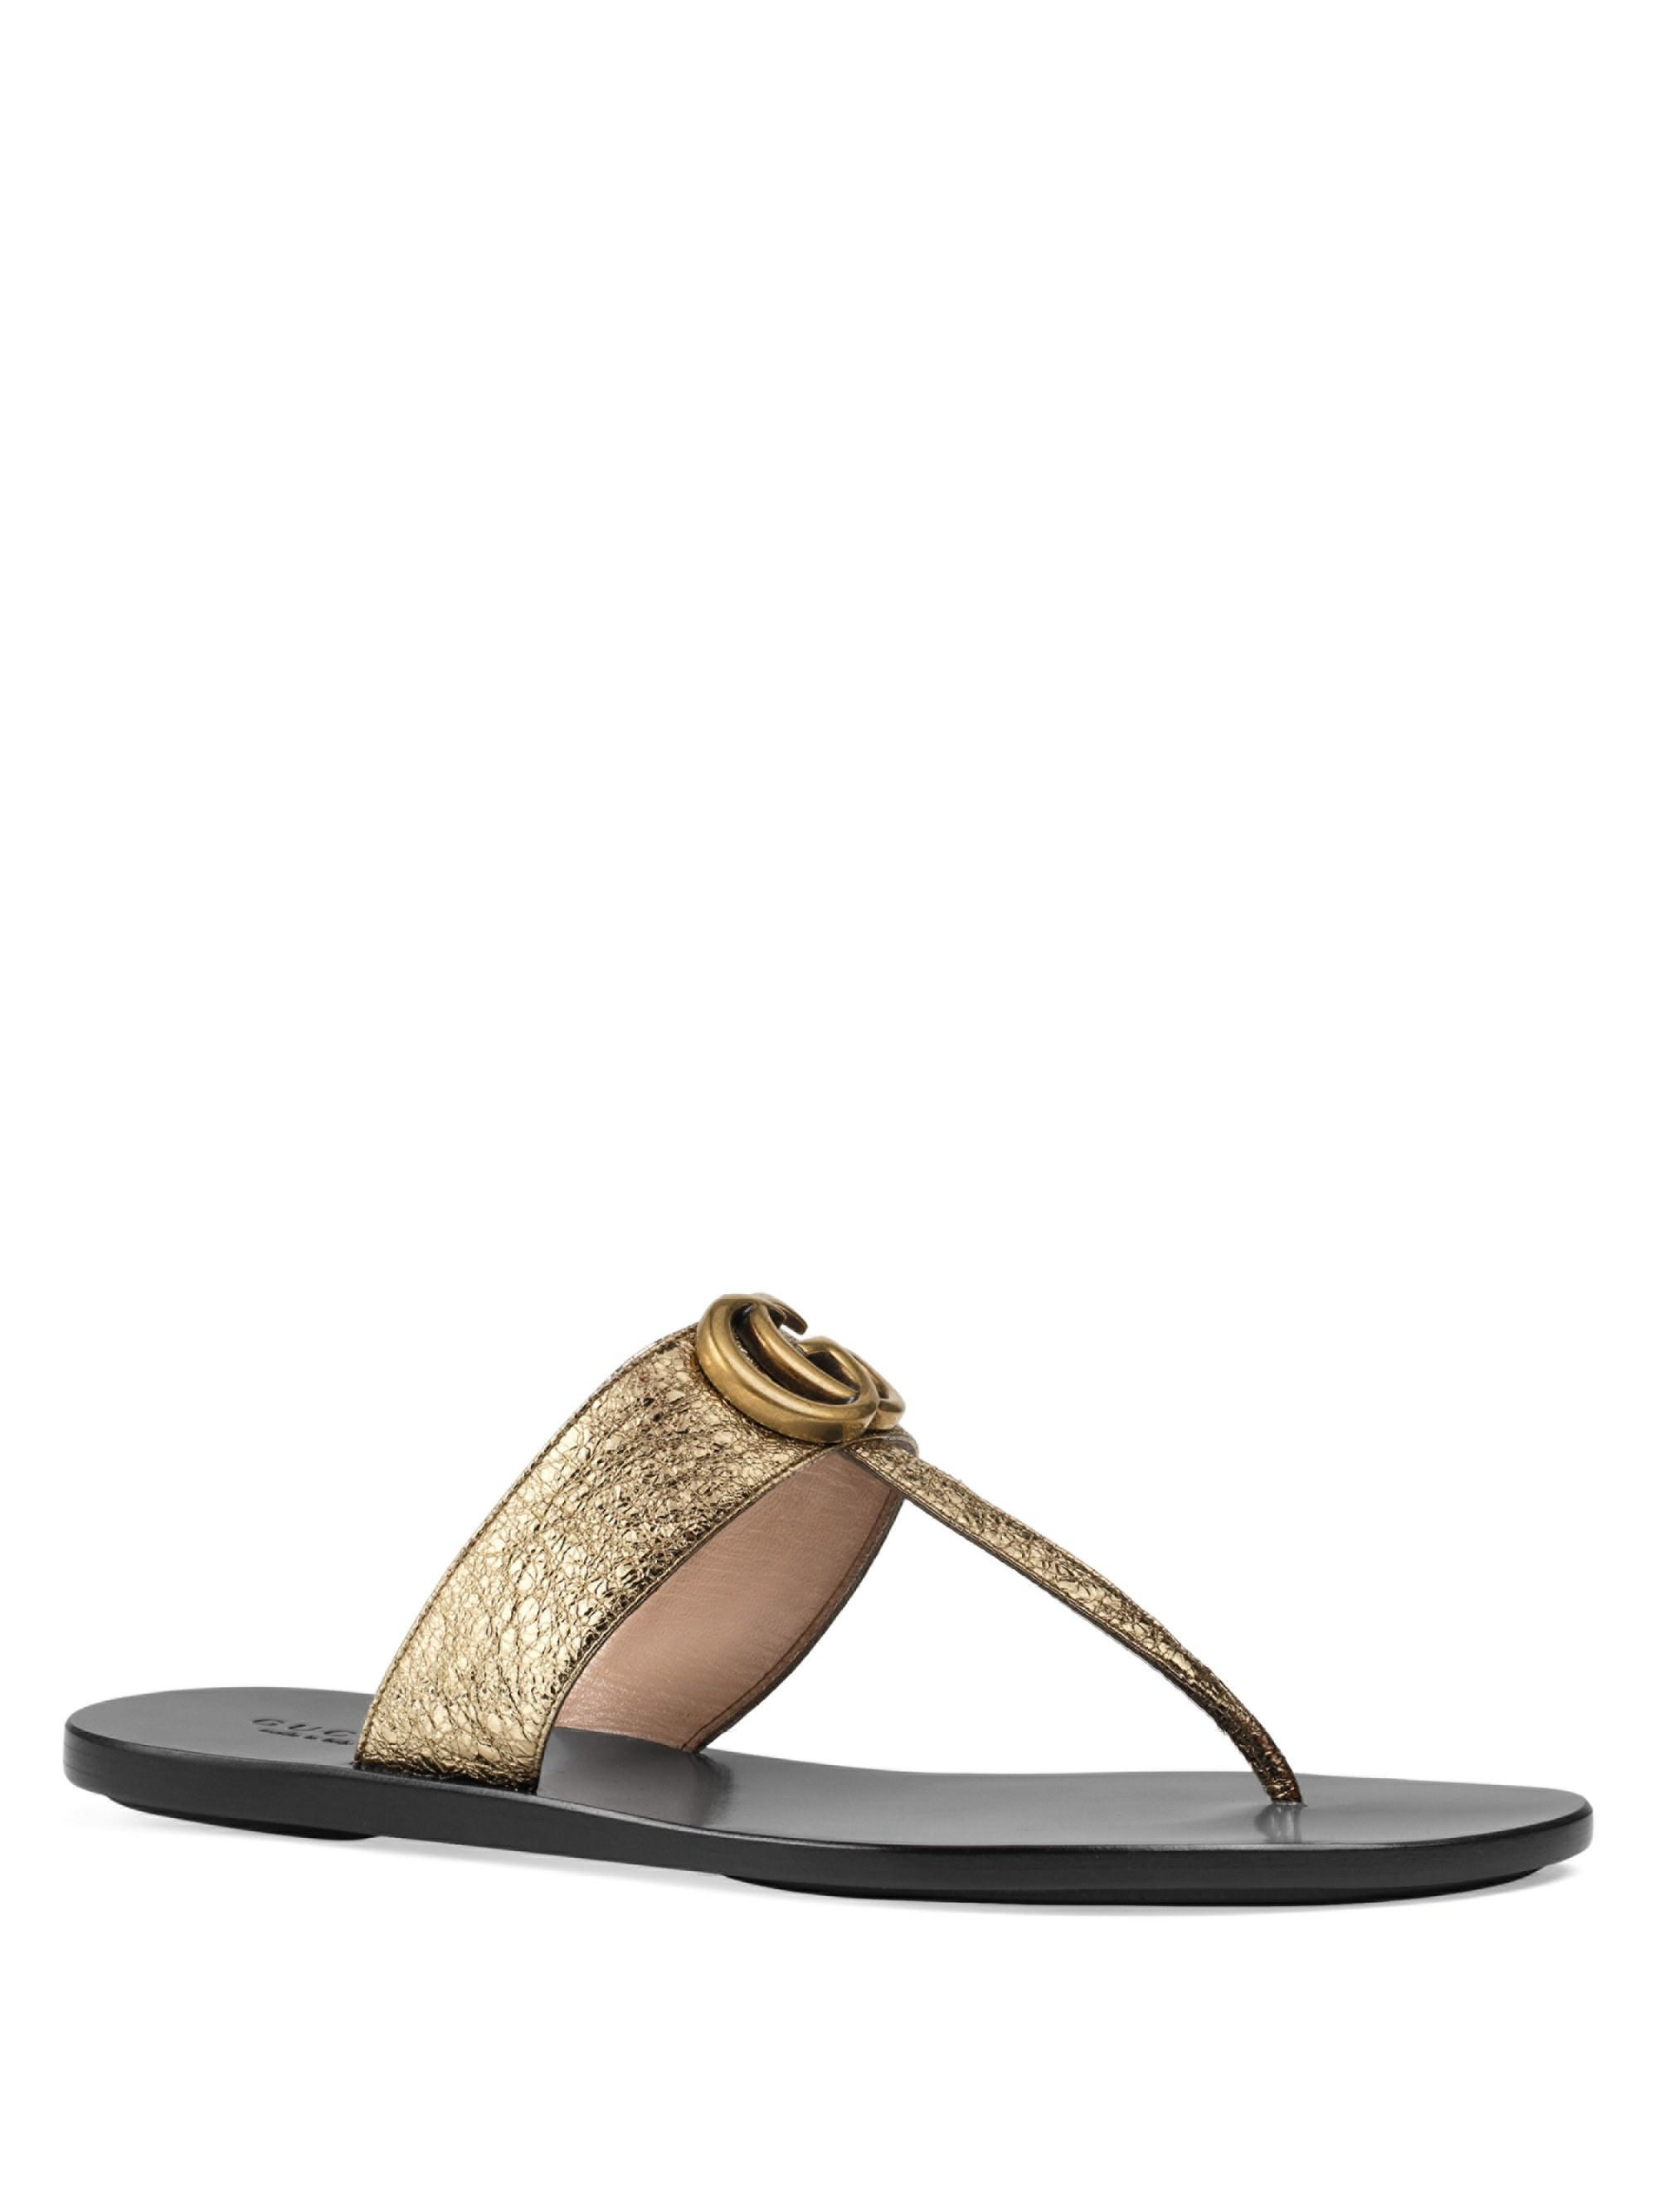 e3f88ccced42 Gucci. Women s Marmont Leather Thong Sandals With Double G